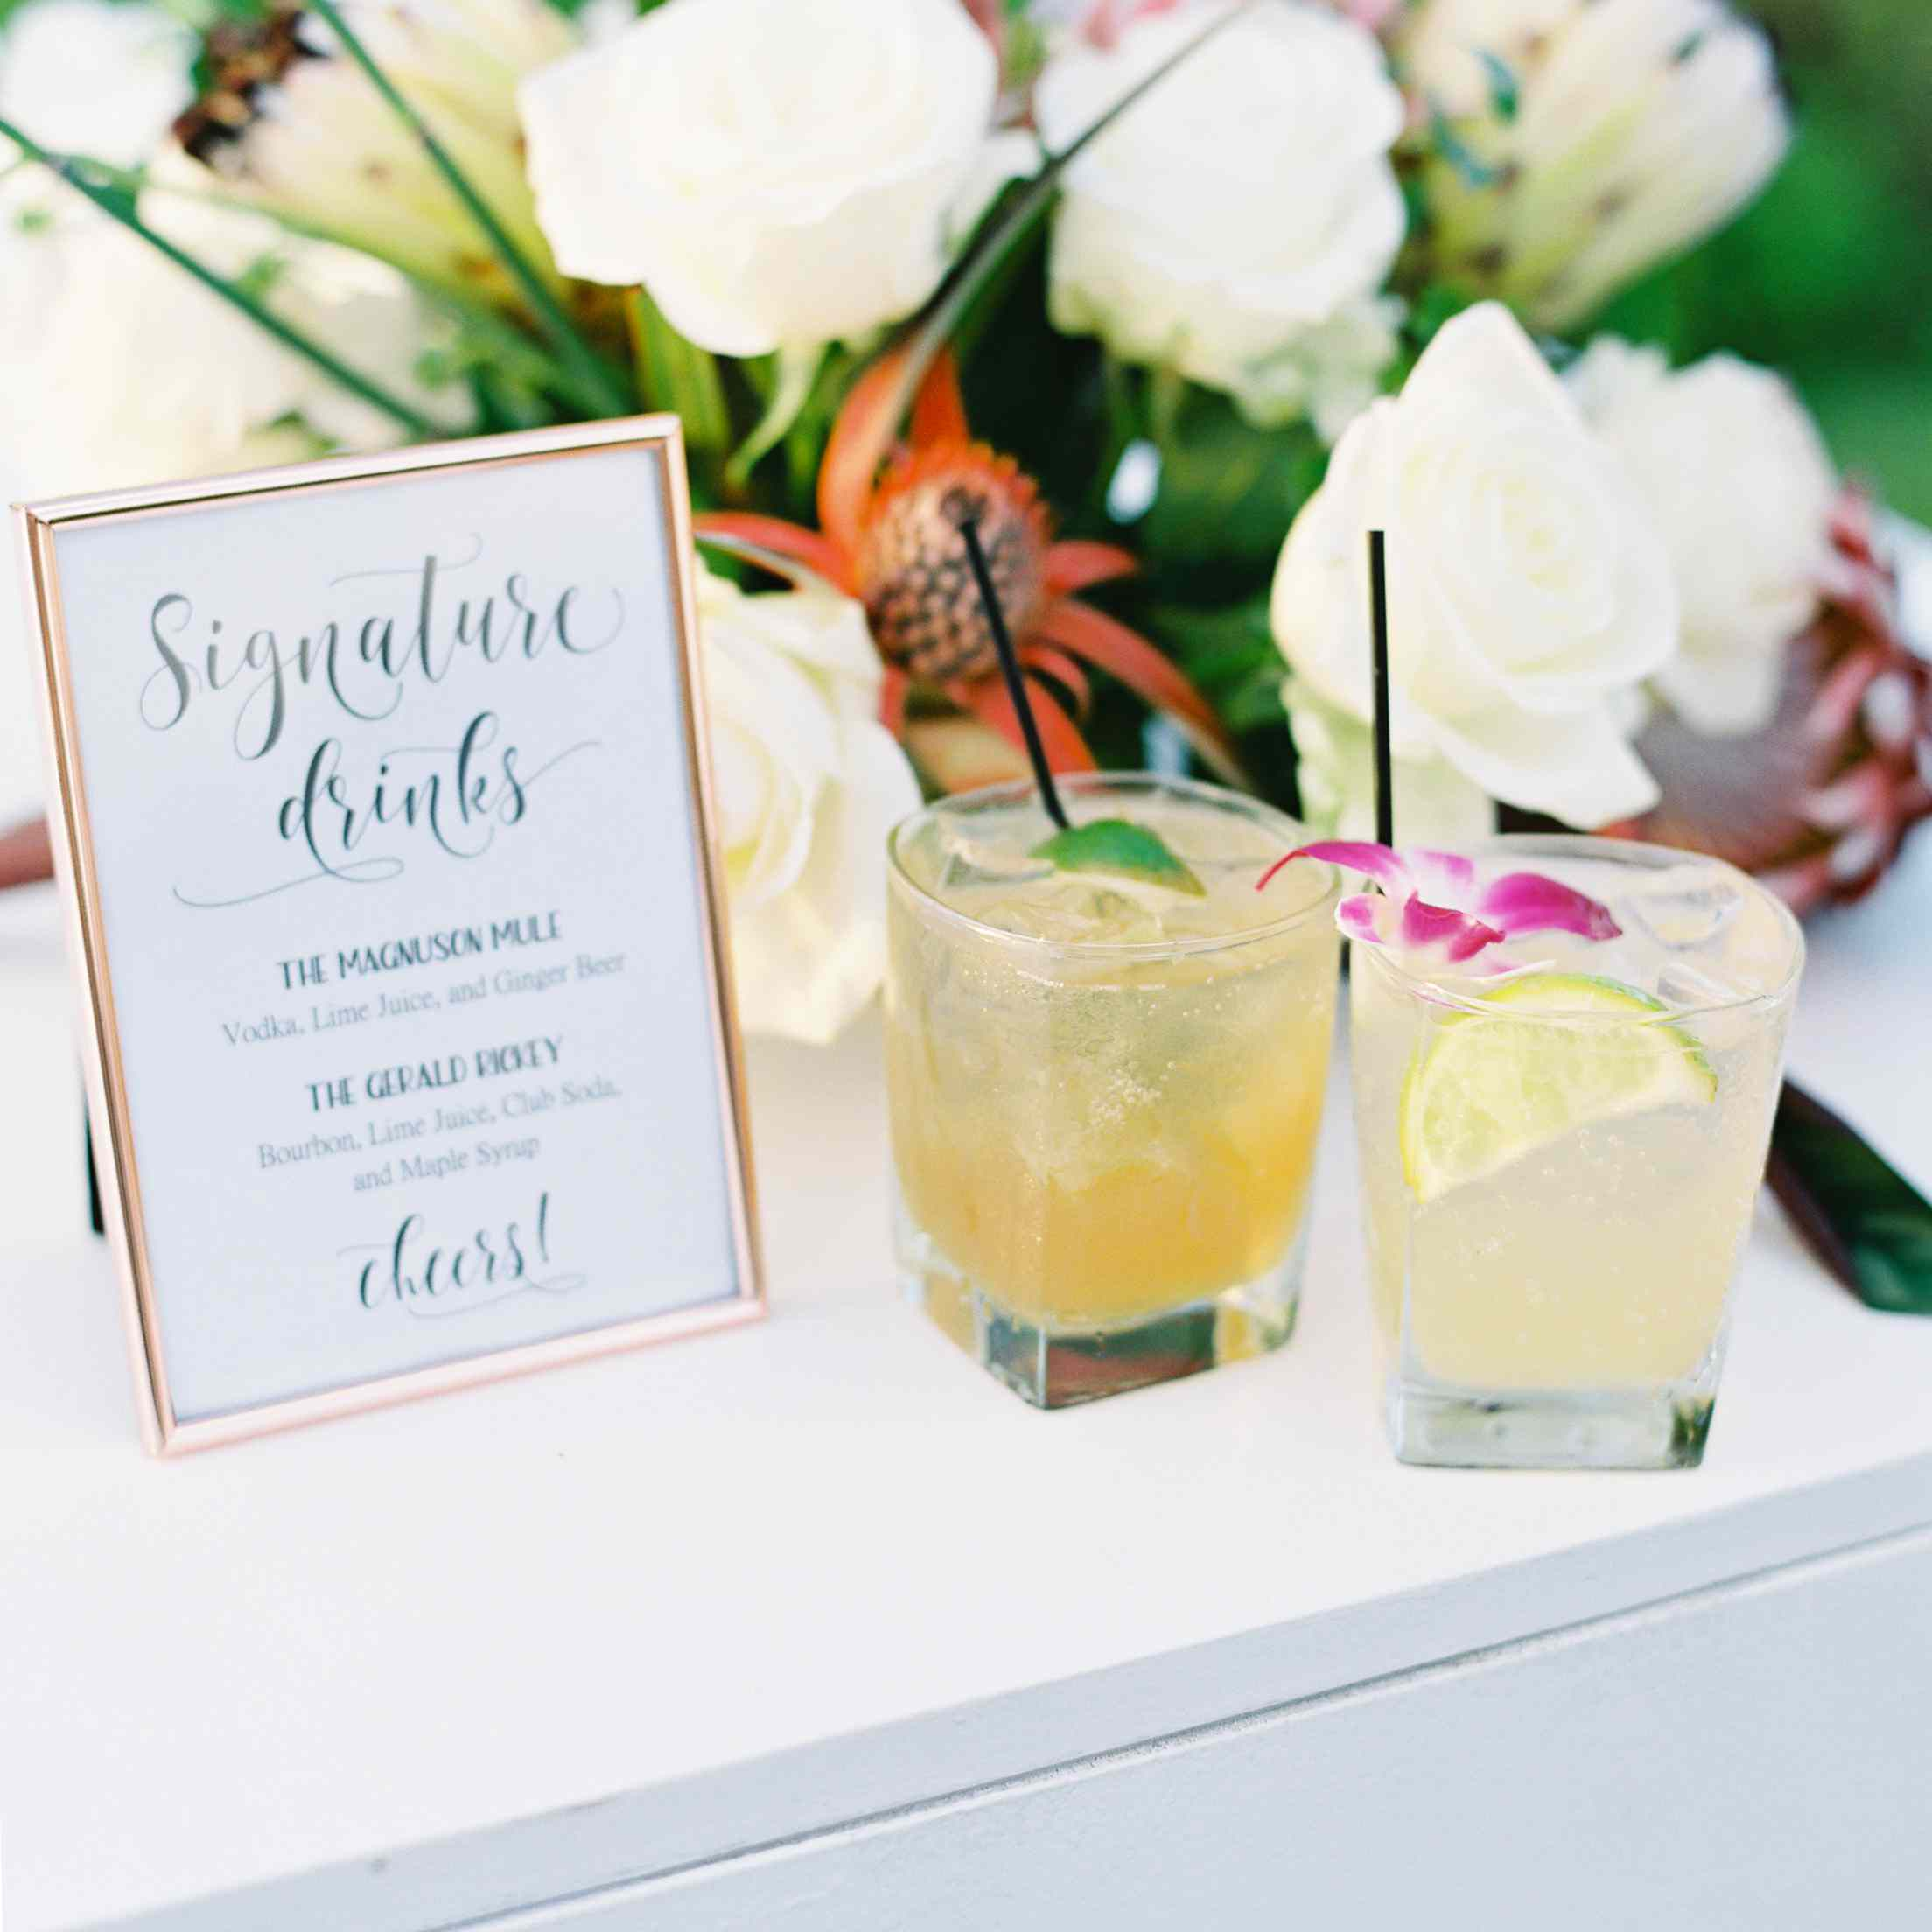 signature drinks with signage